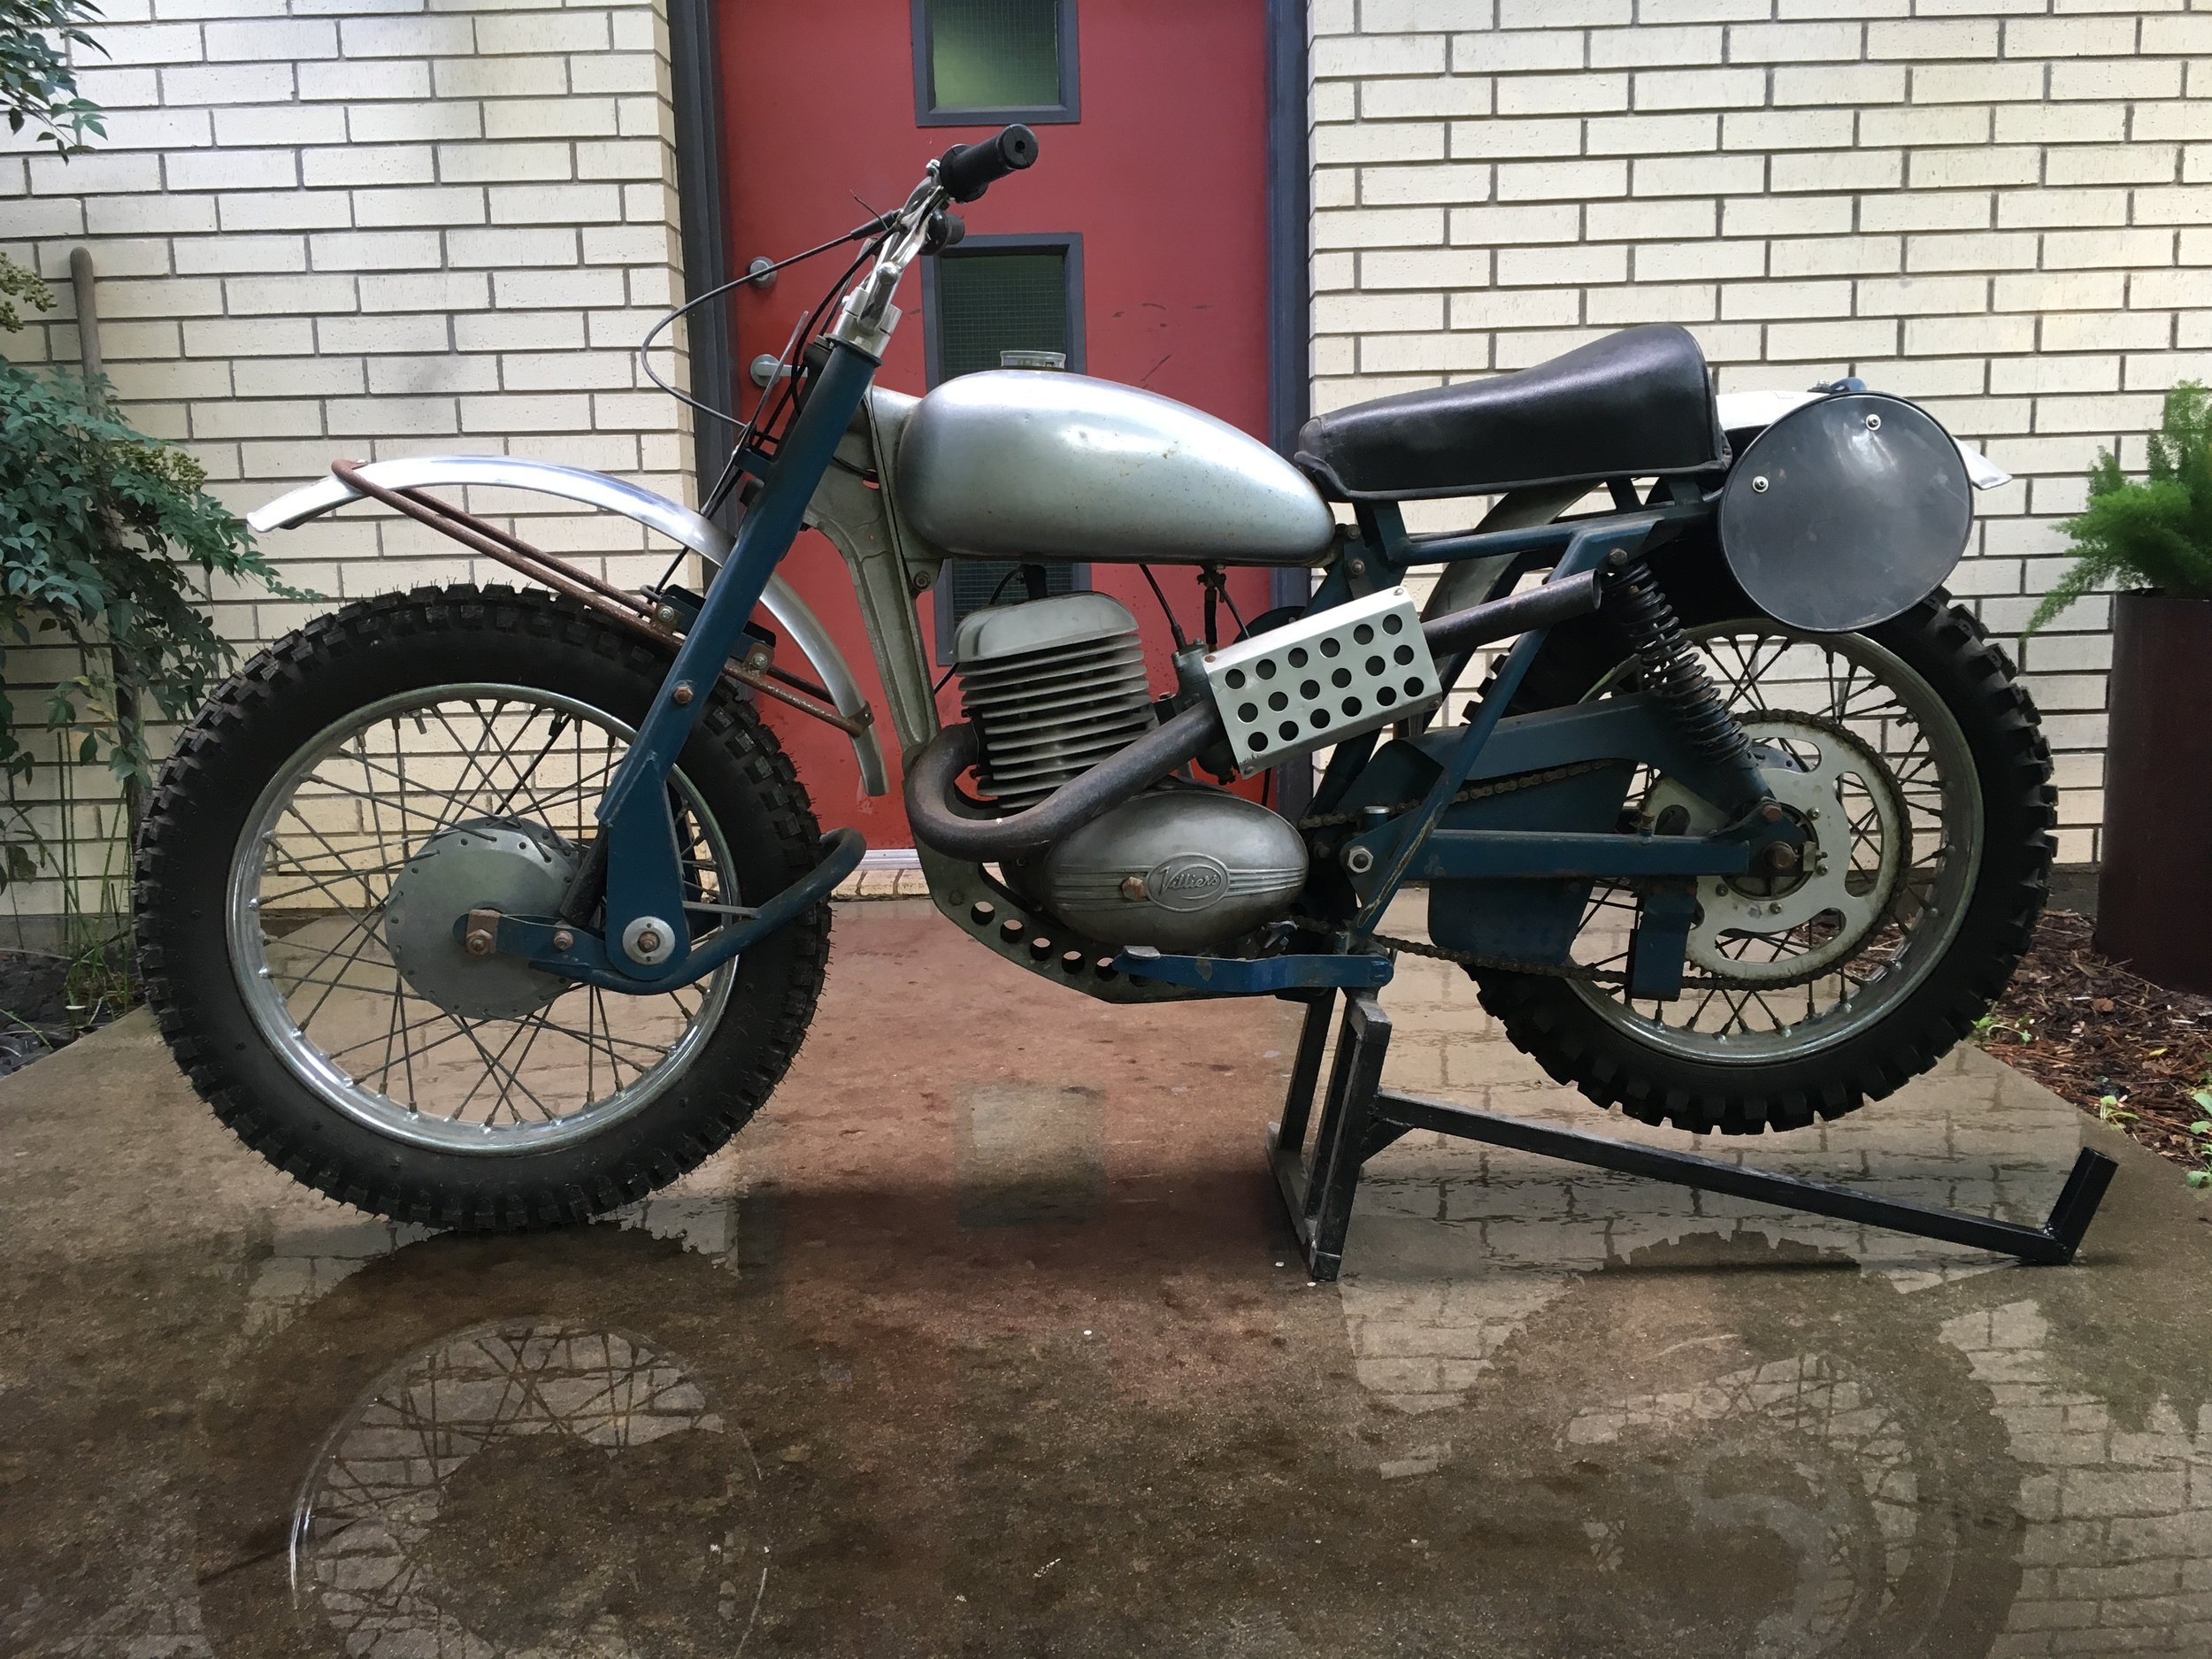 On the 30th of this month, DentonMoto is going to have some bikes for sale at our Movie Night. The showing is at Andy's on the Square here in Denton, and this beautiful 1962 Greeves 250 motocross model will be one of the offerings. This is a picture fresh from the barn, but the bike is undergoing a good cleaning and revival.